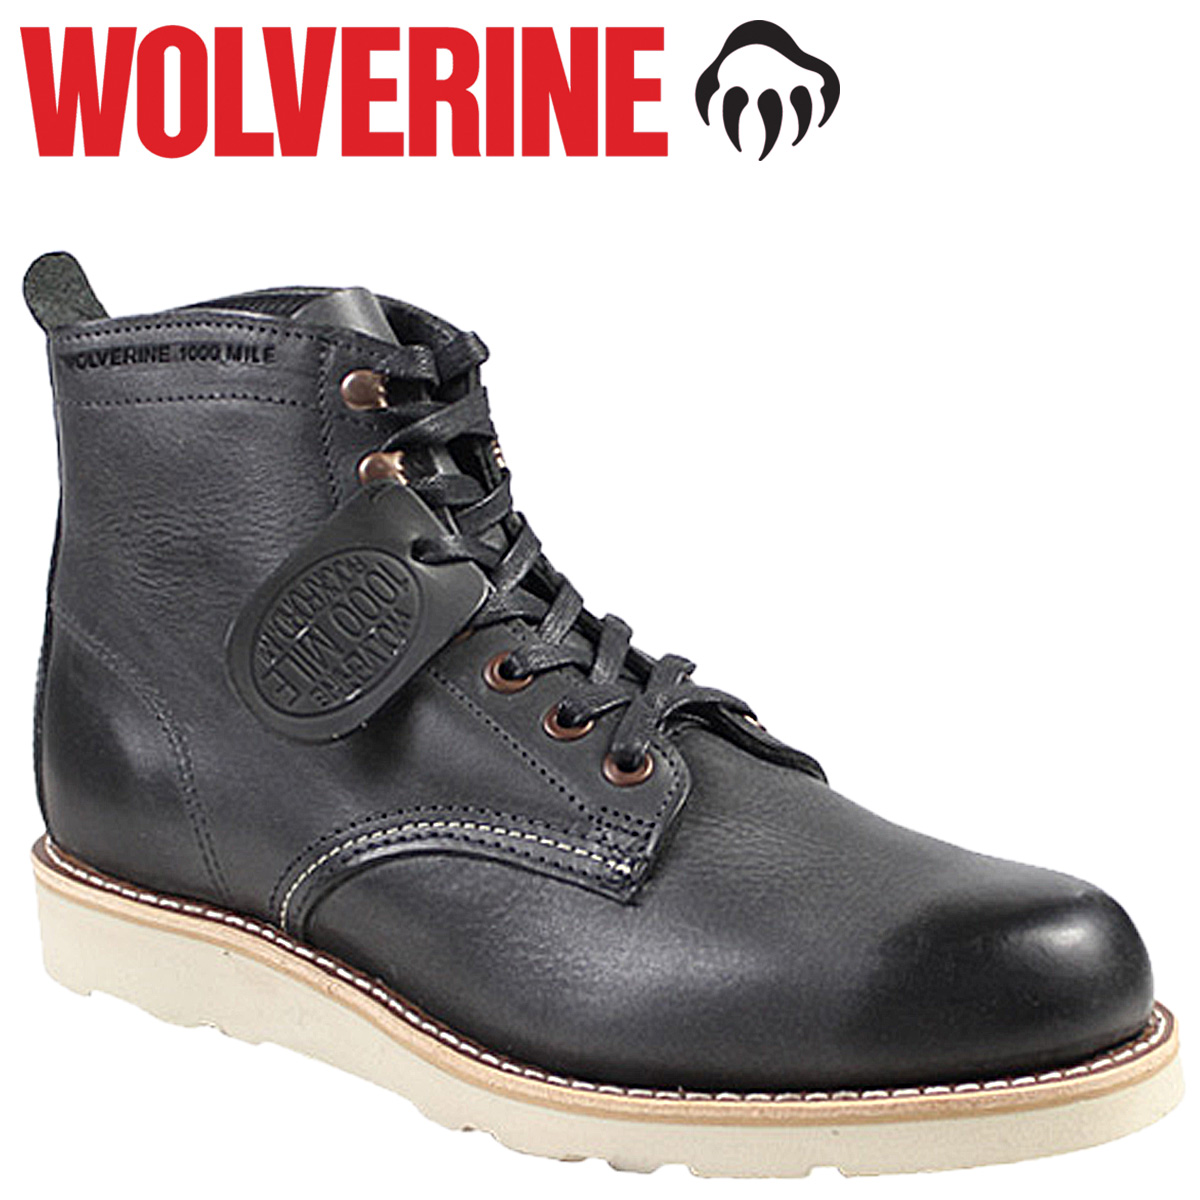 b4235ea670cd4 Wolverene WOLVERINE 1,000 miles boots boots PRESTWICK 1000 MILE WEDGE BOOT  D Wise W00914 blackwork boots men